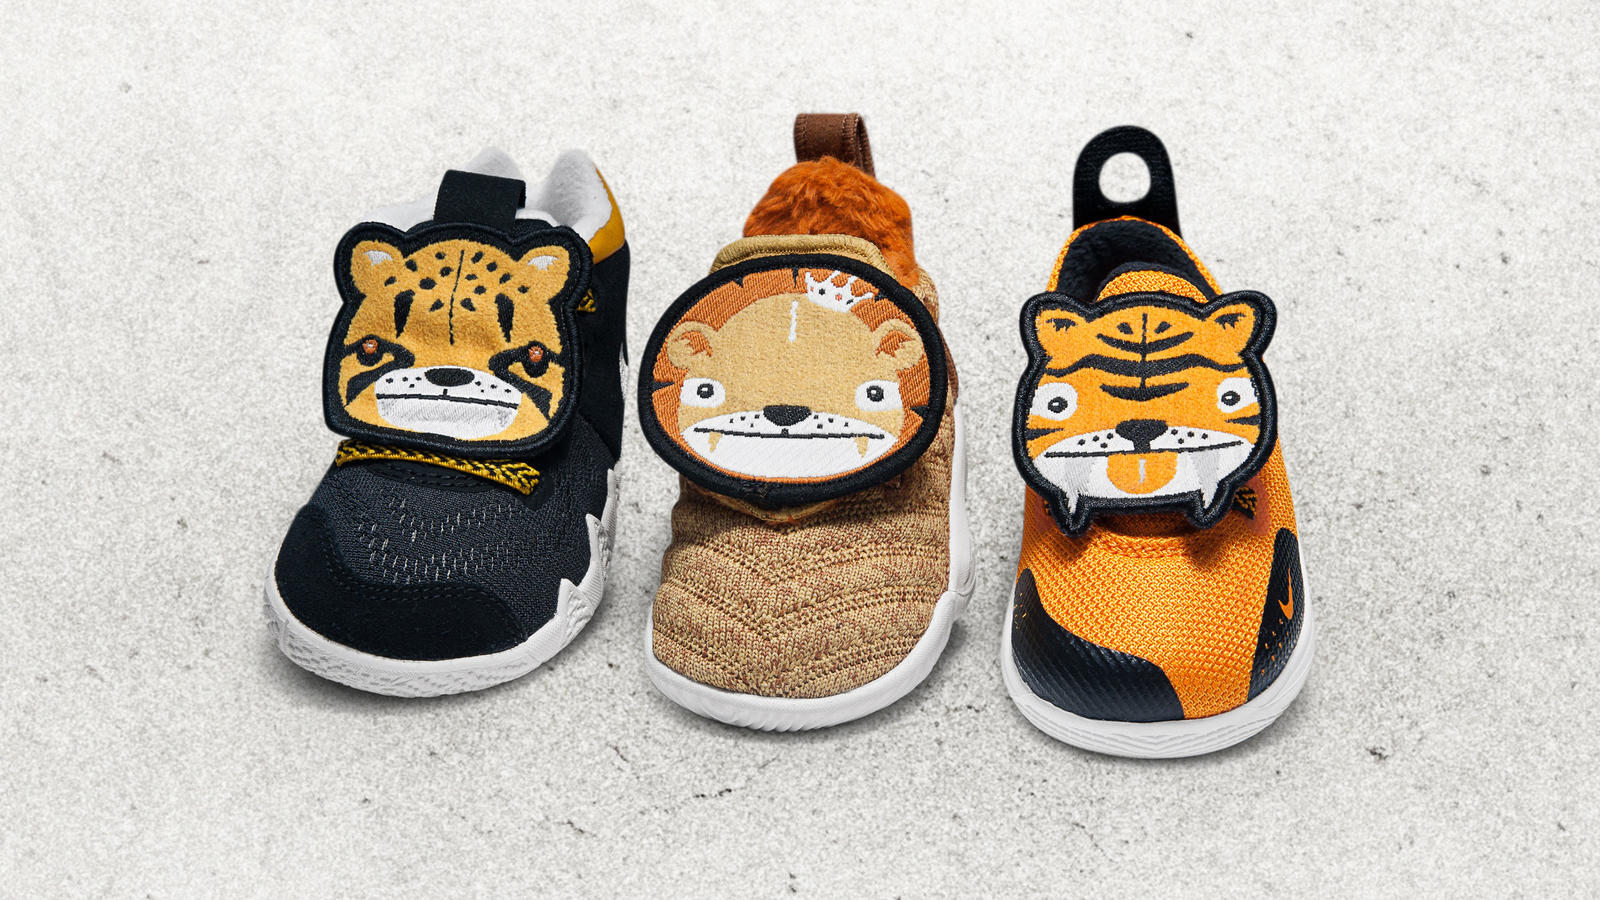 Featuredfootwear littlebigcatpack 429 re hd 1600